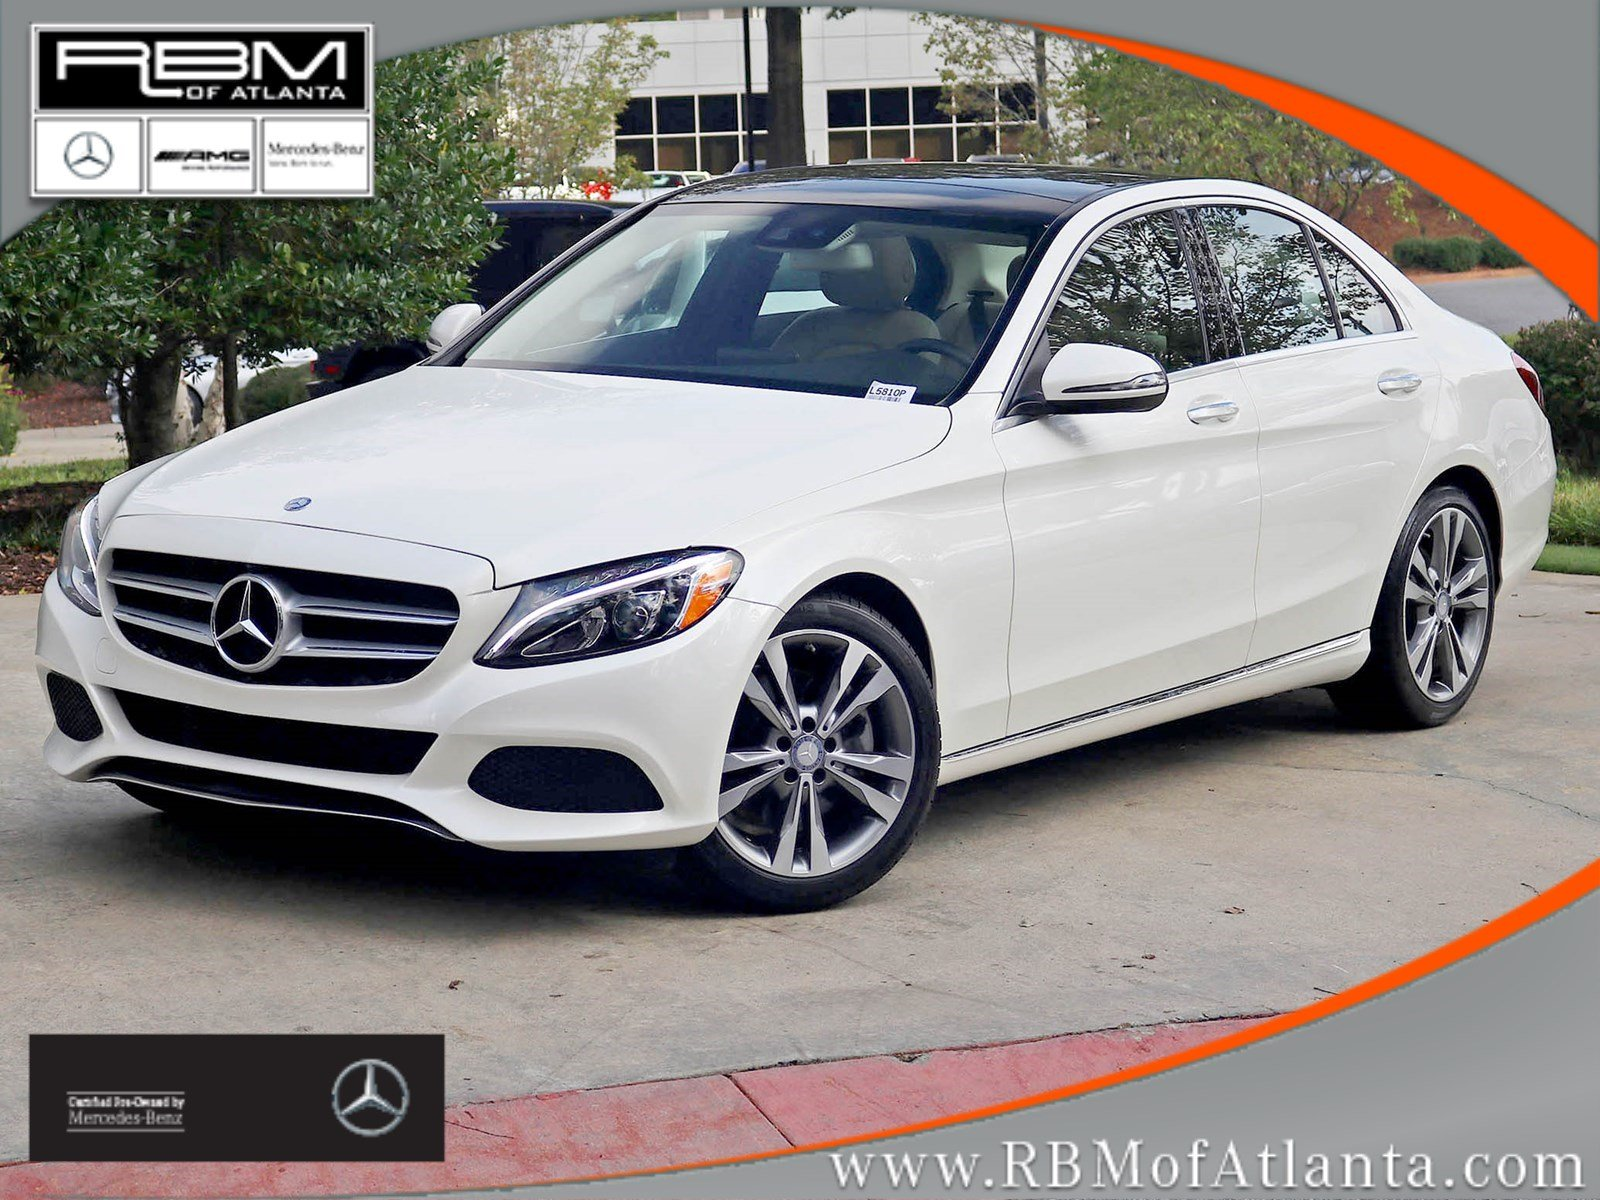 Mercedes benz and used car dealer atlanta rbm of atlanta for Mercedes benz dealers atlanta